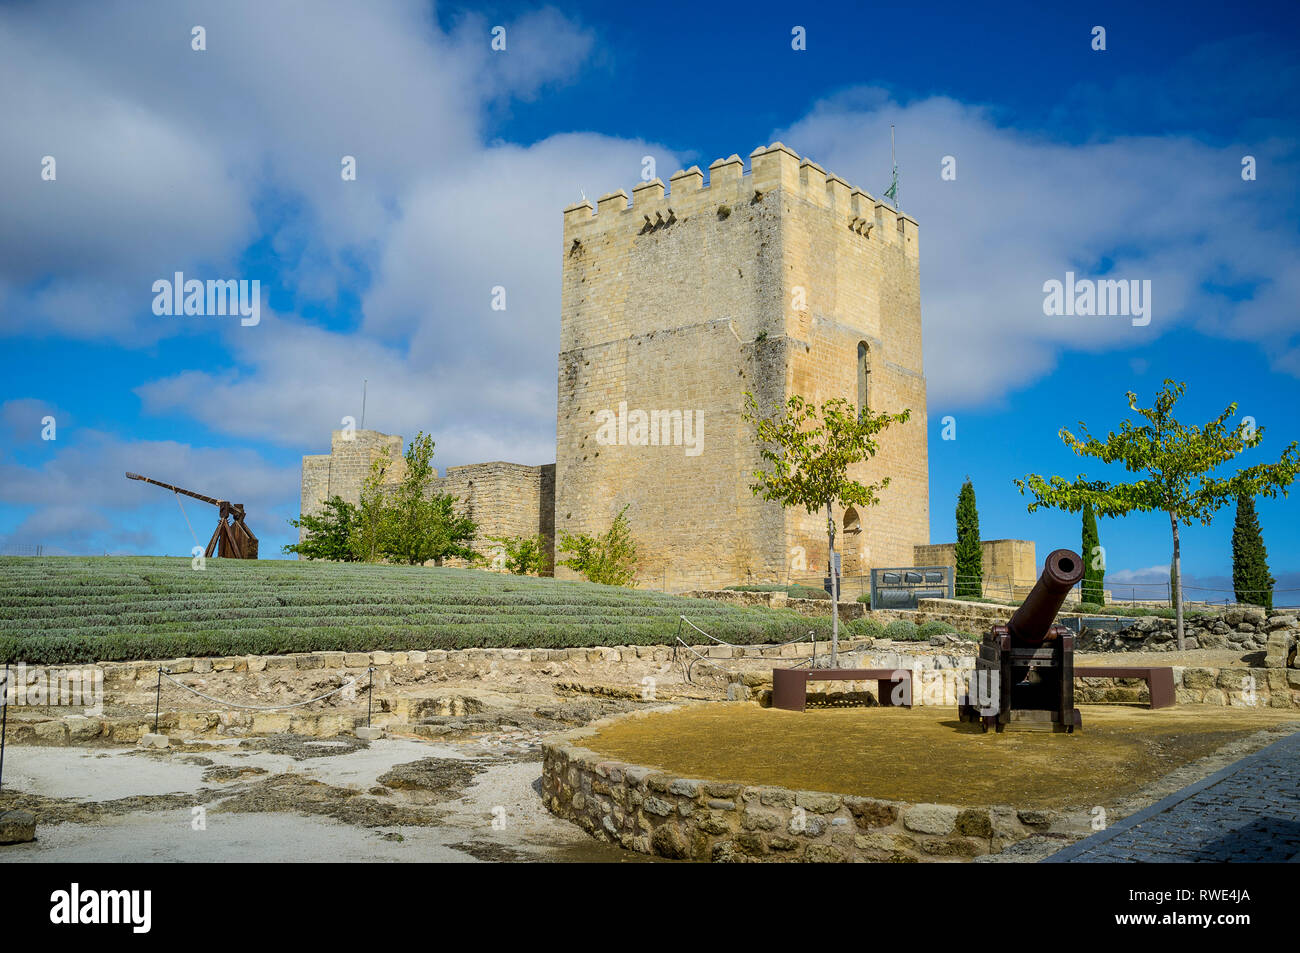 Inside Alcala la Real Castle, showing the Alcazaba Tower, lavendar garden, trebuchet and cannon defensive weapons, Jaen Province, Analusia, Spain. - Stock Image